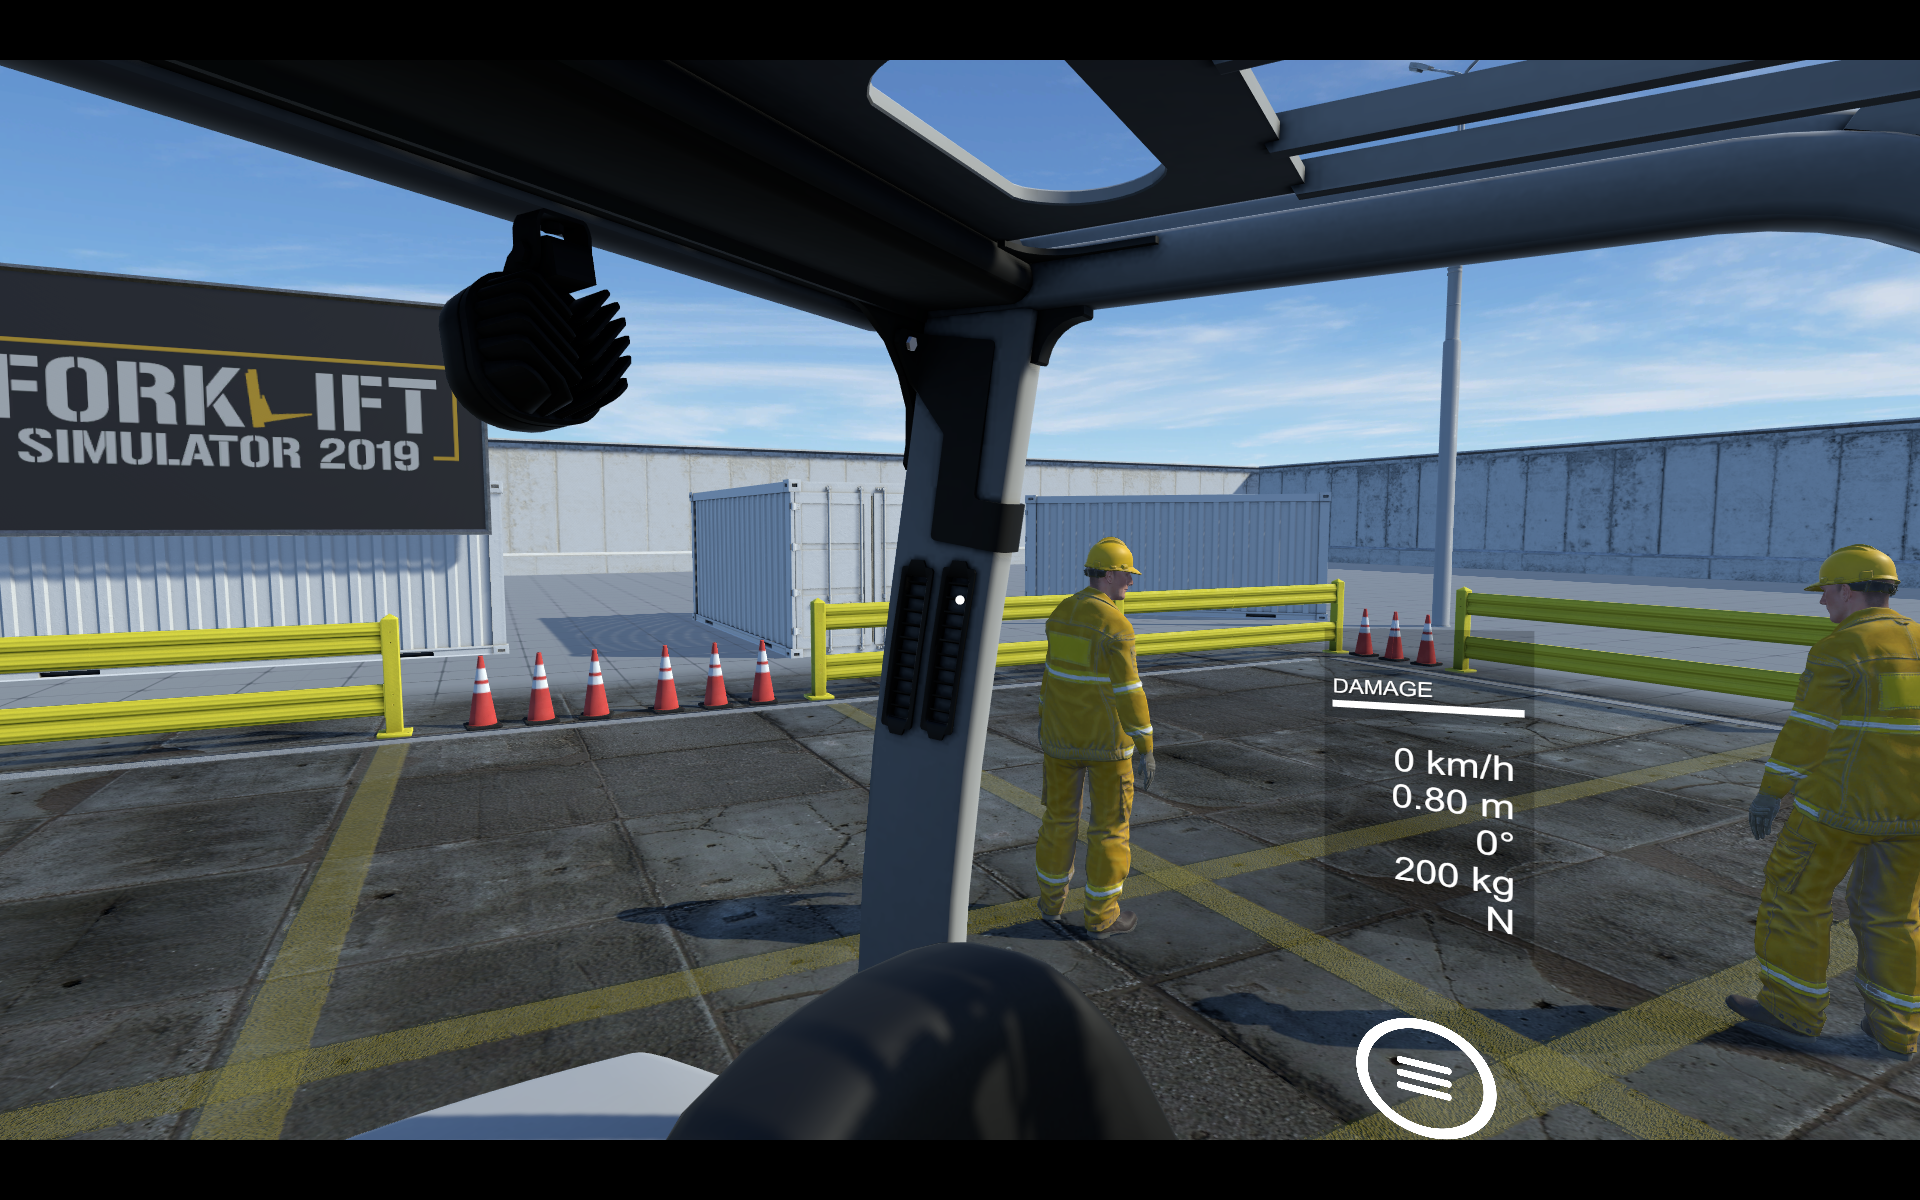 Forklift Simulator 2019 by Blind Squirrel Games